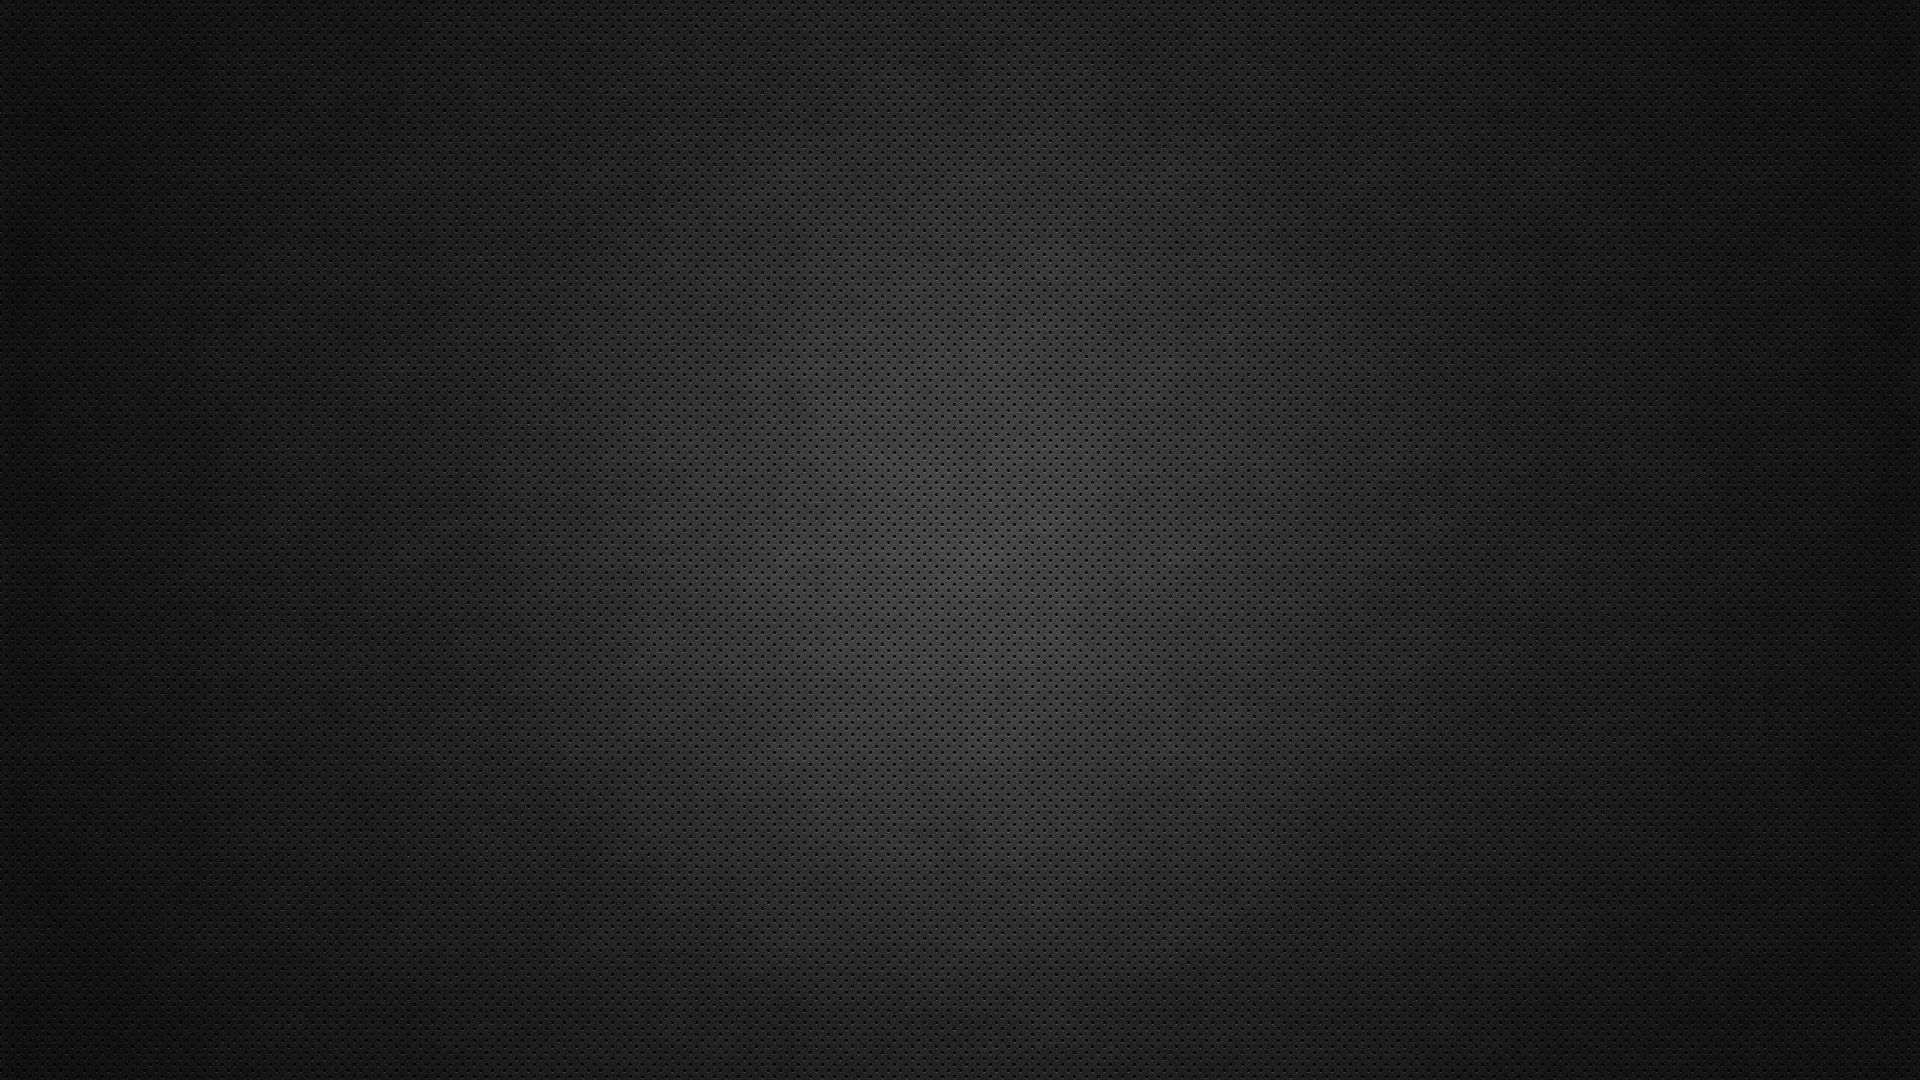 Plain Black nice wallpaper